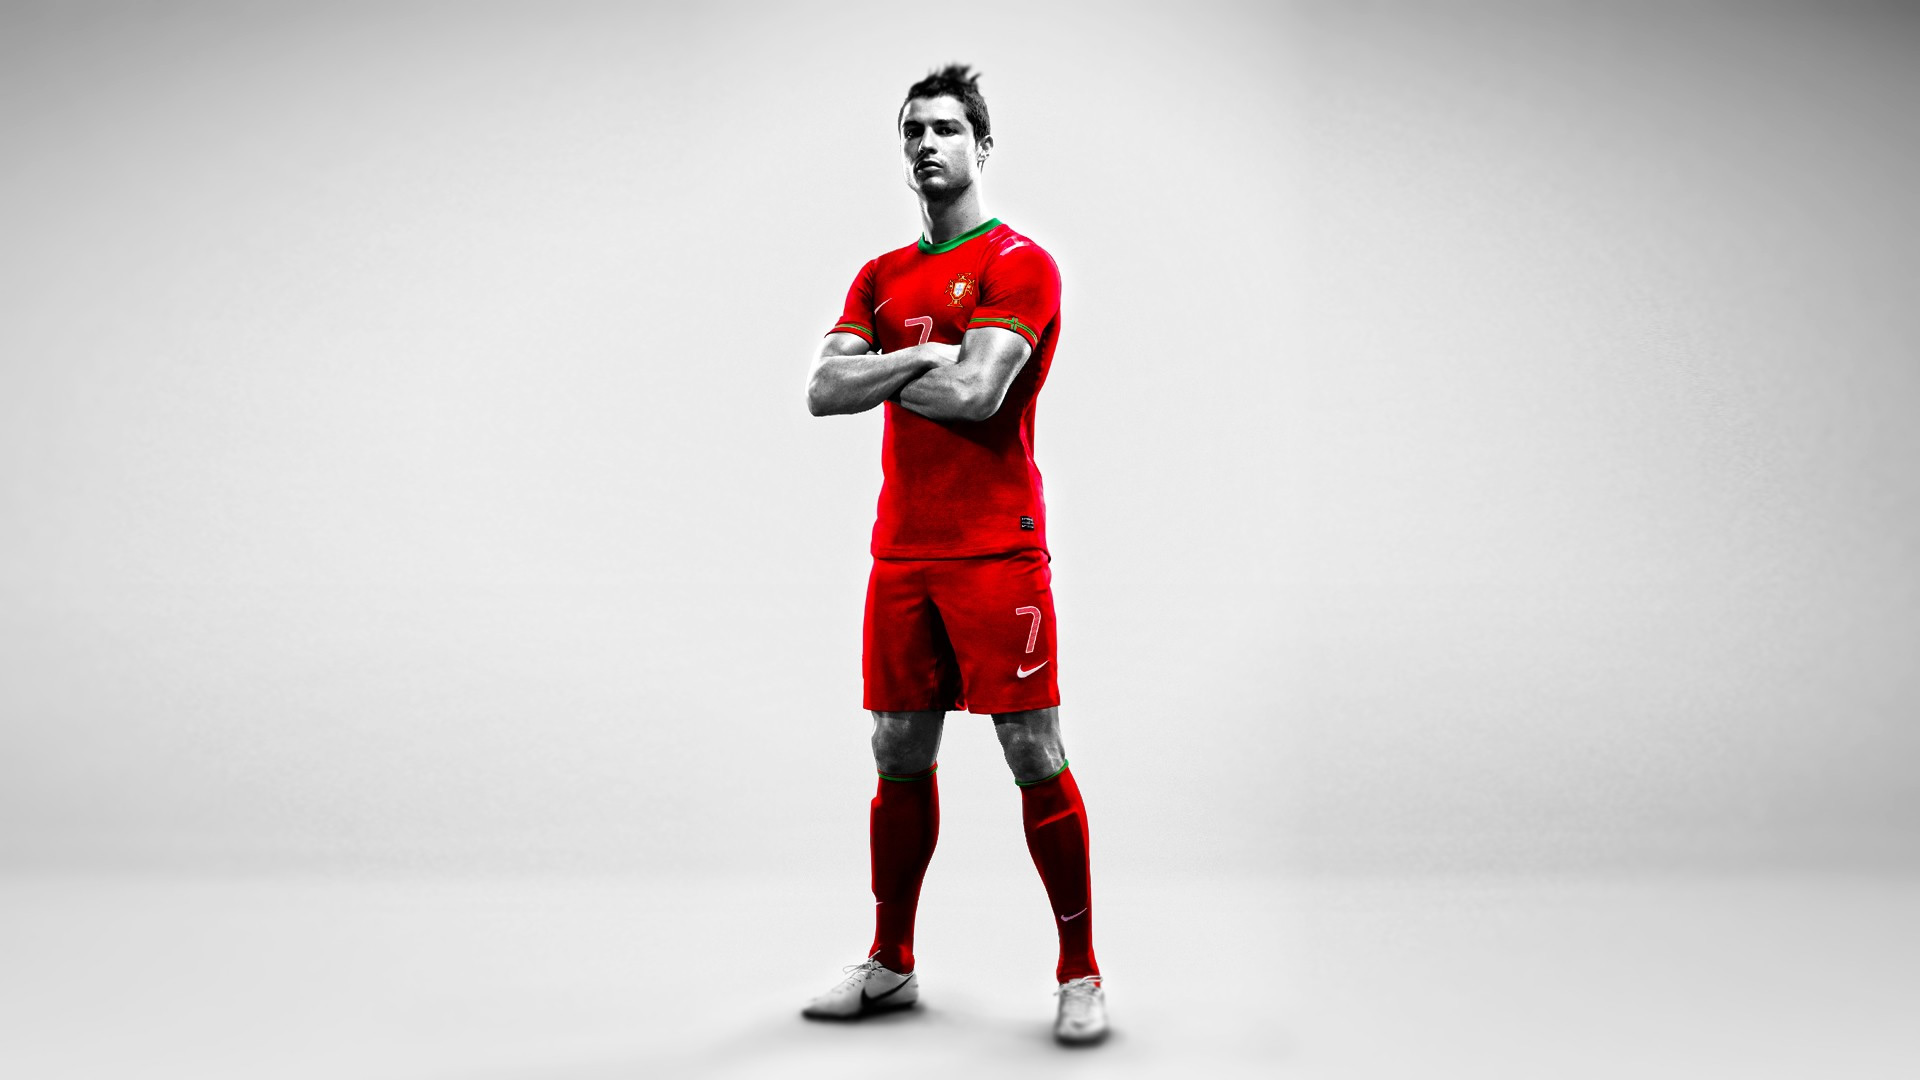 Collection of Ronaldo Wallpaper on HDWallpapers 1920x1080